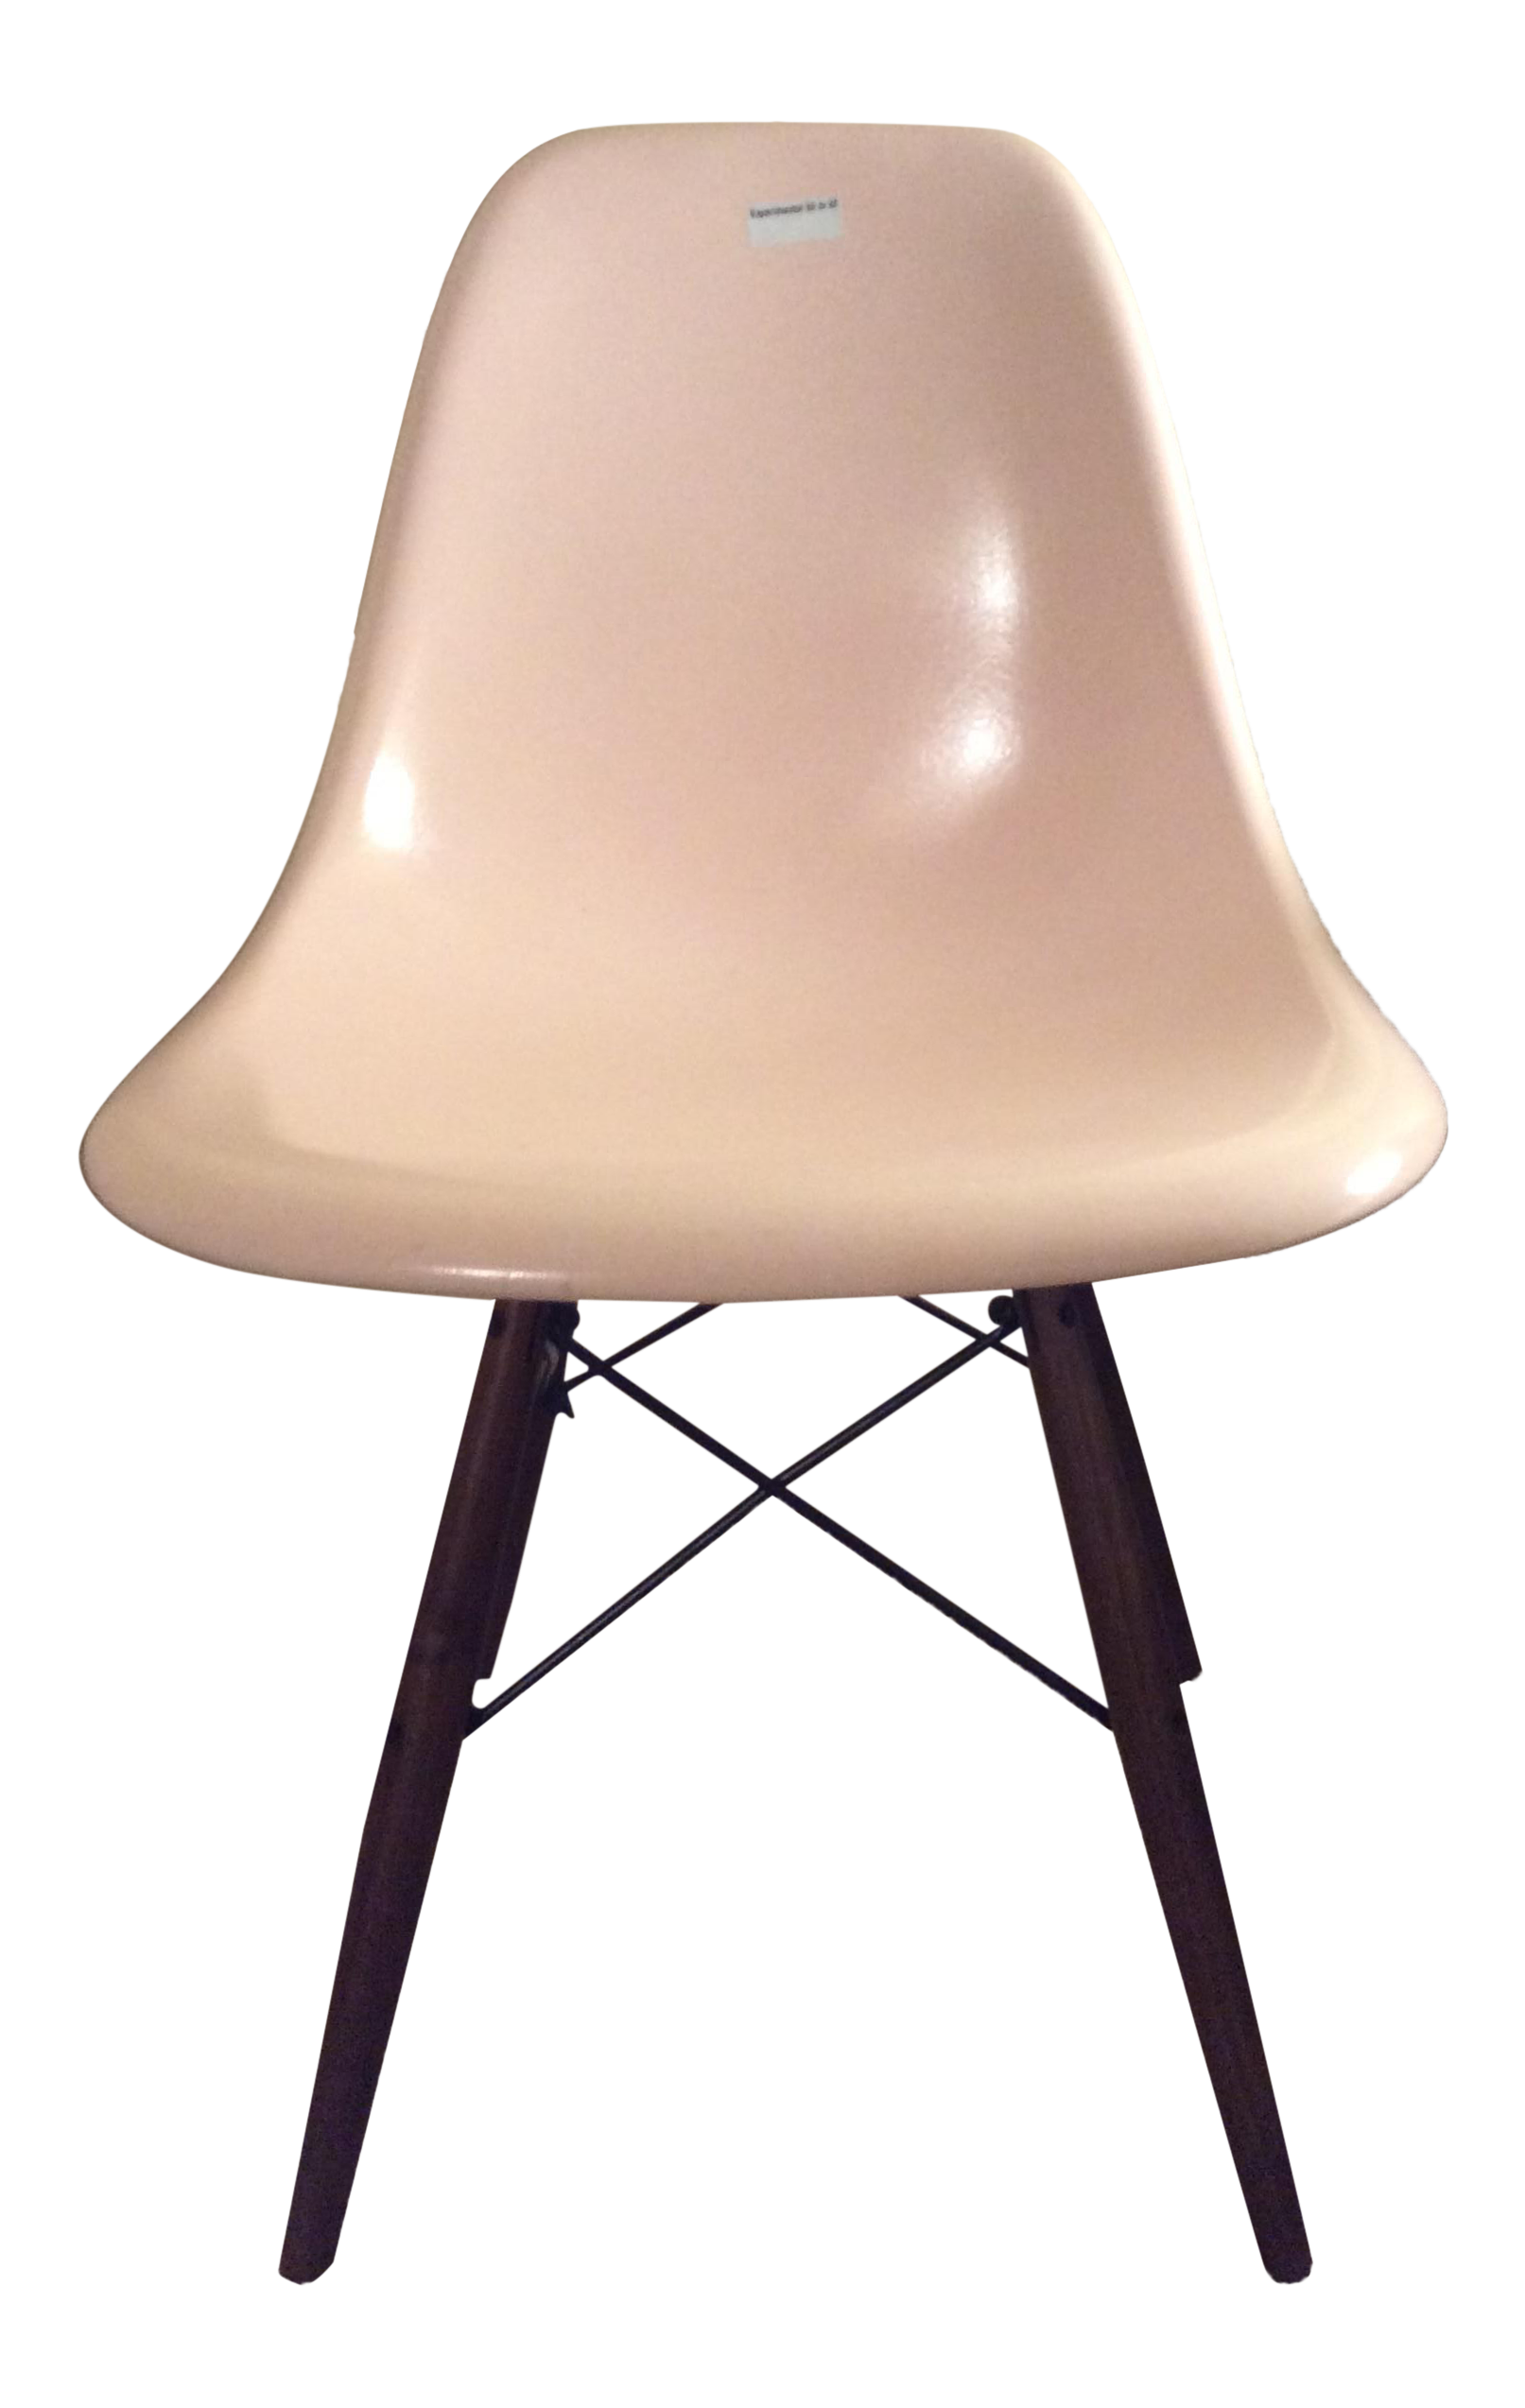 eames fiberglass shell chair chairish. Black Bedroom Furniture Sets. Home Design Ideas